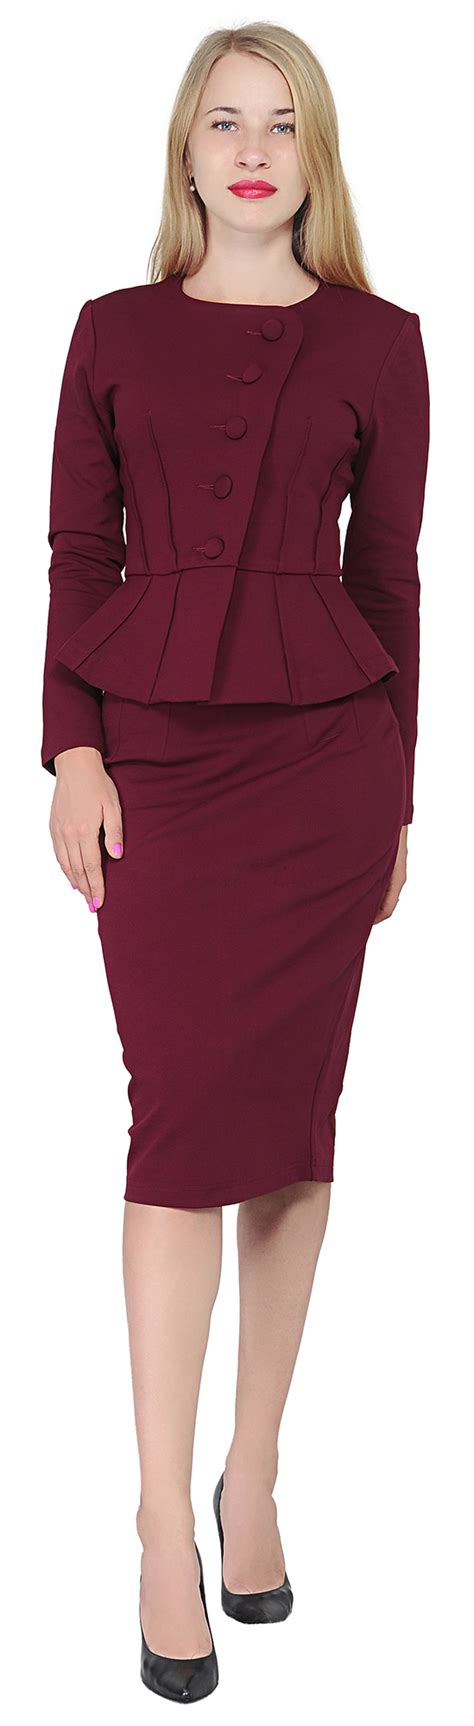 Blouse Brukat Mng Suit Maroon burgundy marycrafts s formal office business work